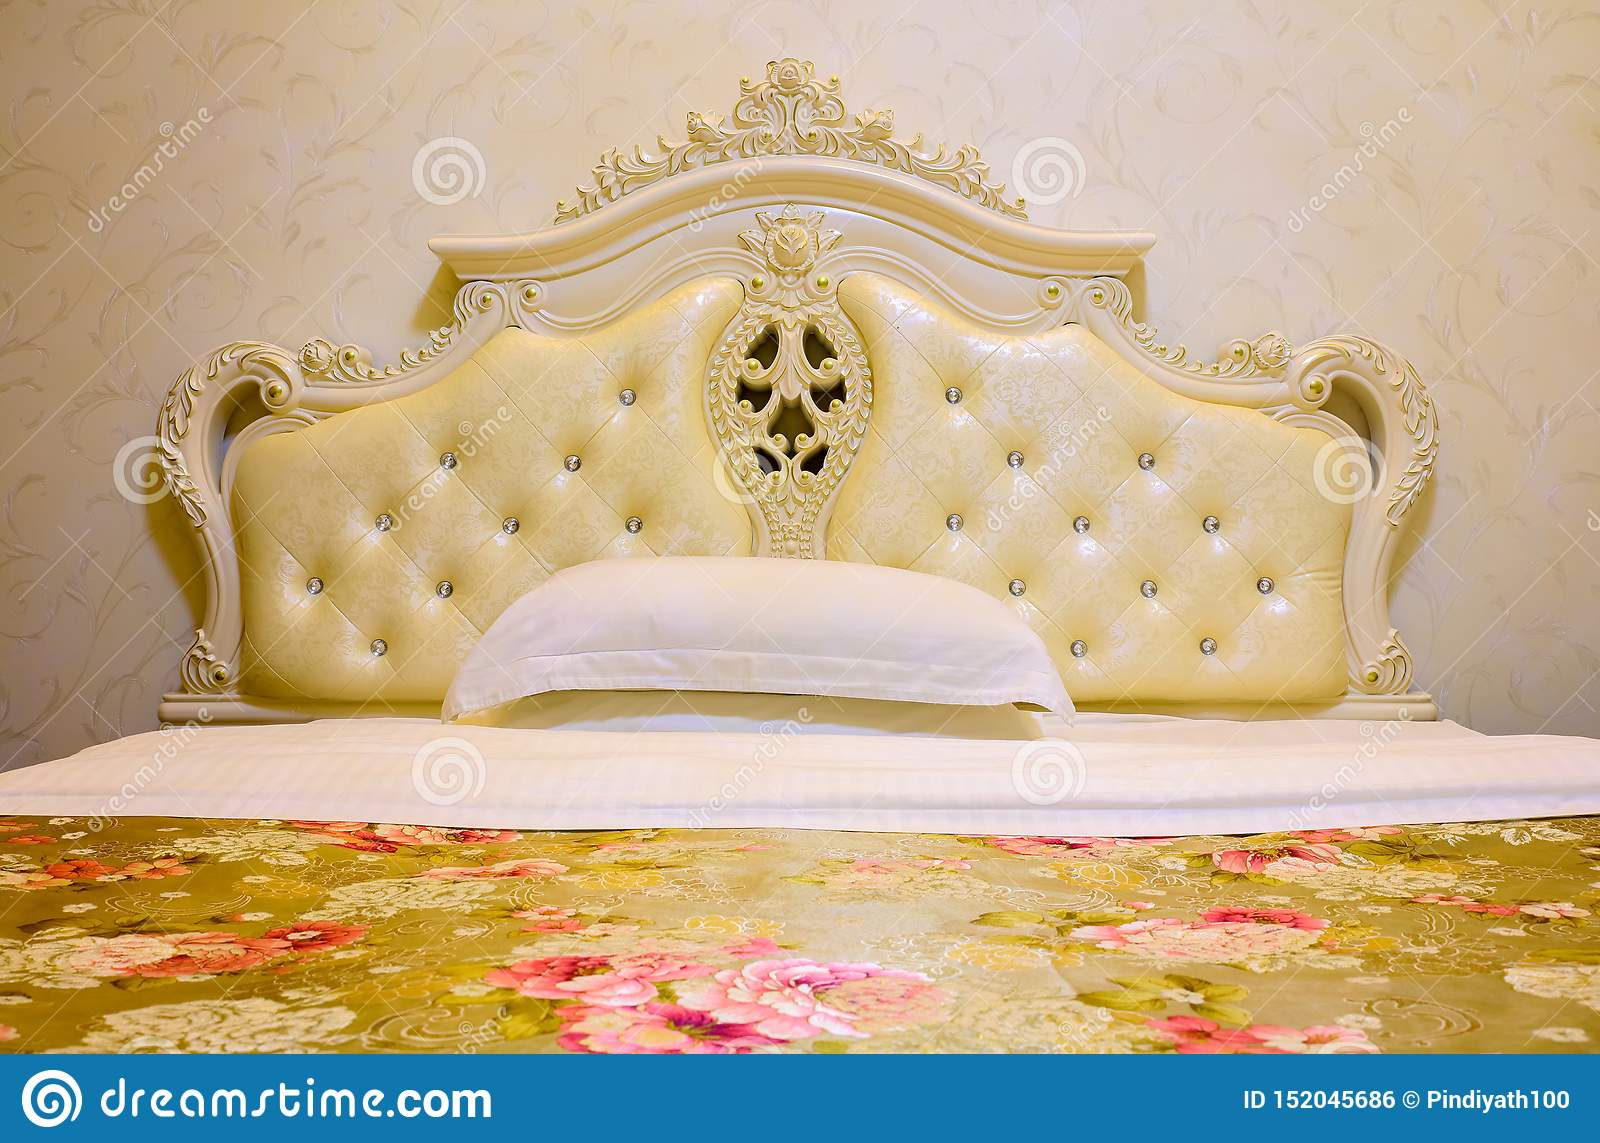 Beautiful And Elegant Bedroom With Wooden Bed Frame And Bed Stock Photo Image Of Retro Luxury 152045686